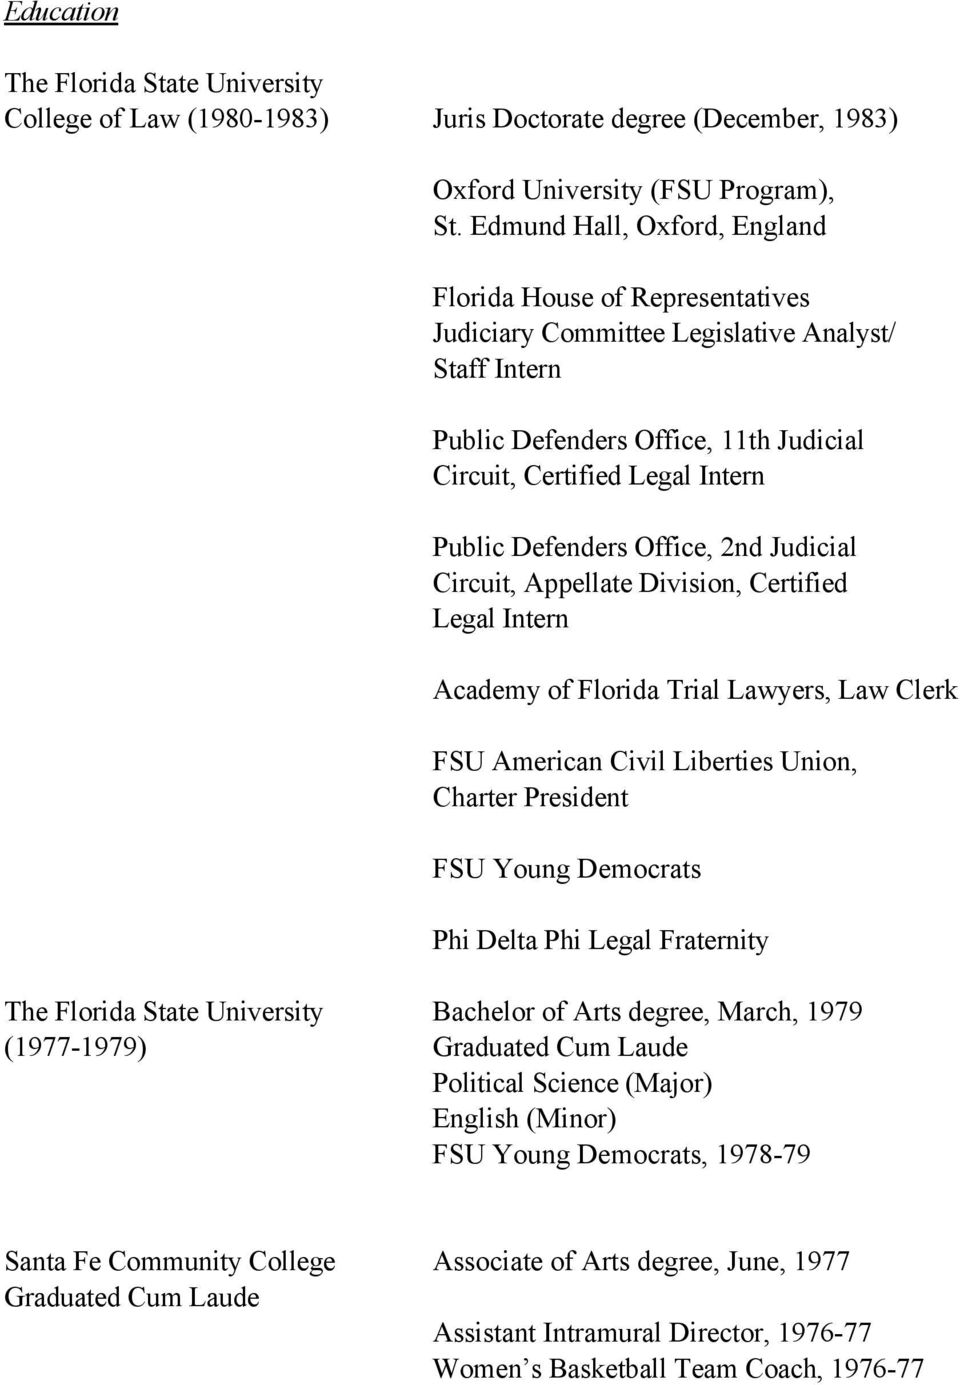 lance j block curriculum vitae pdf defenders office 2nd judicial circuit appellate division certified legal intern academy of florida